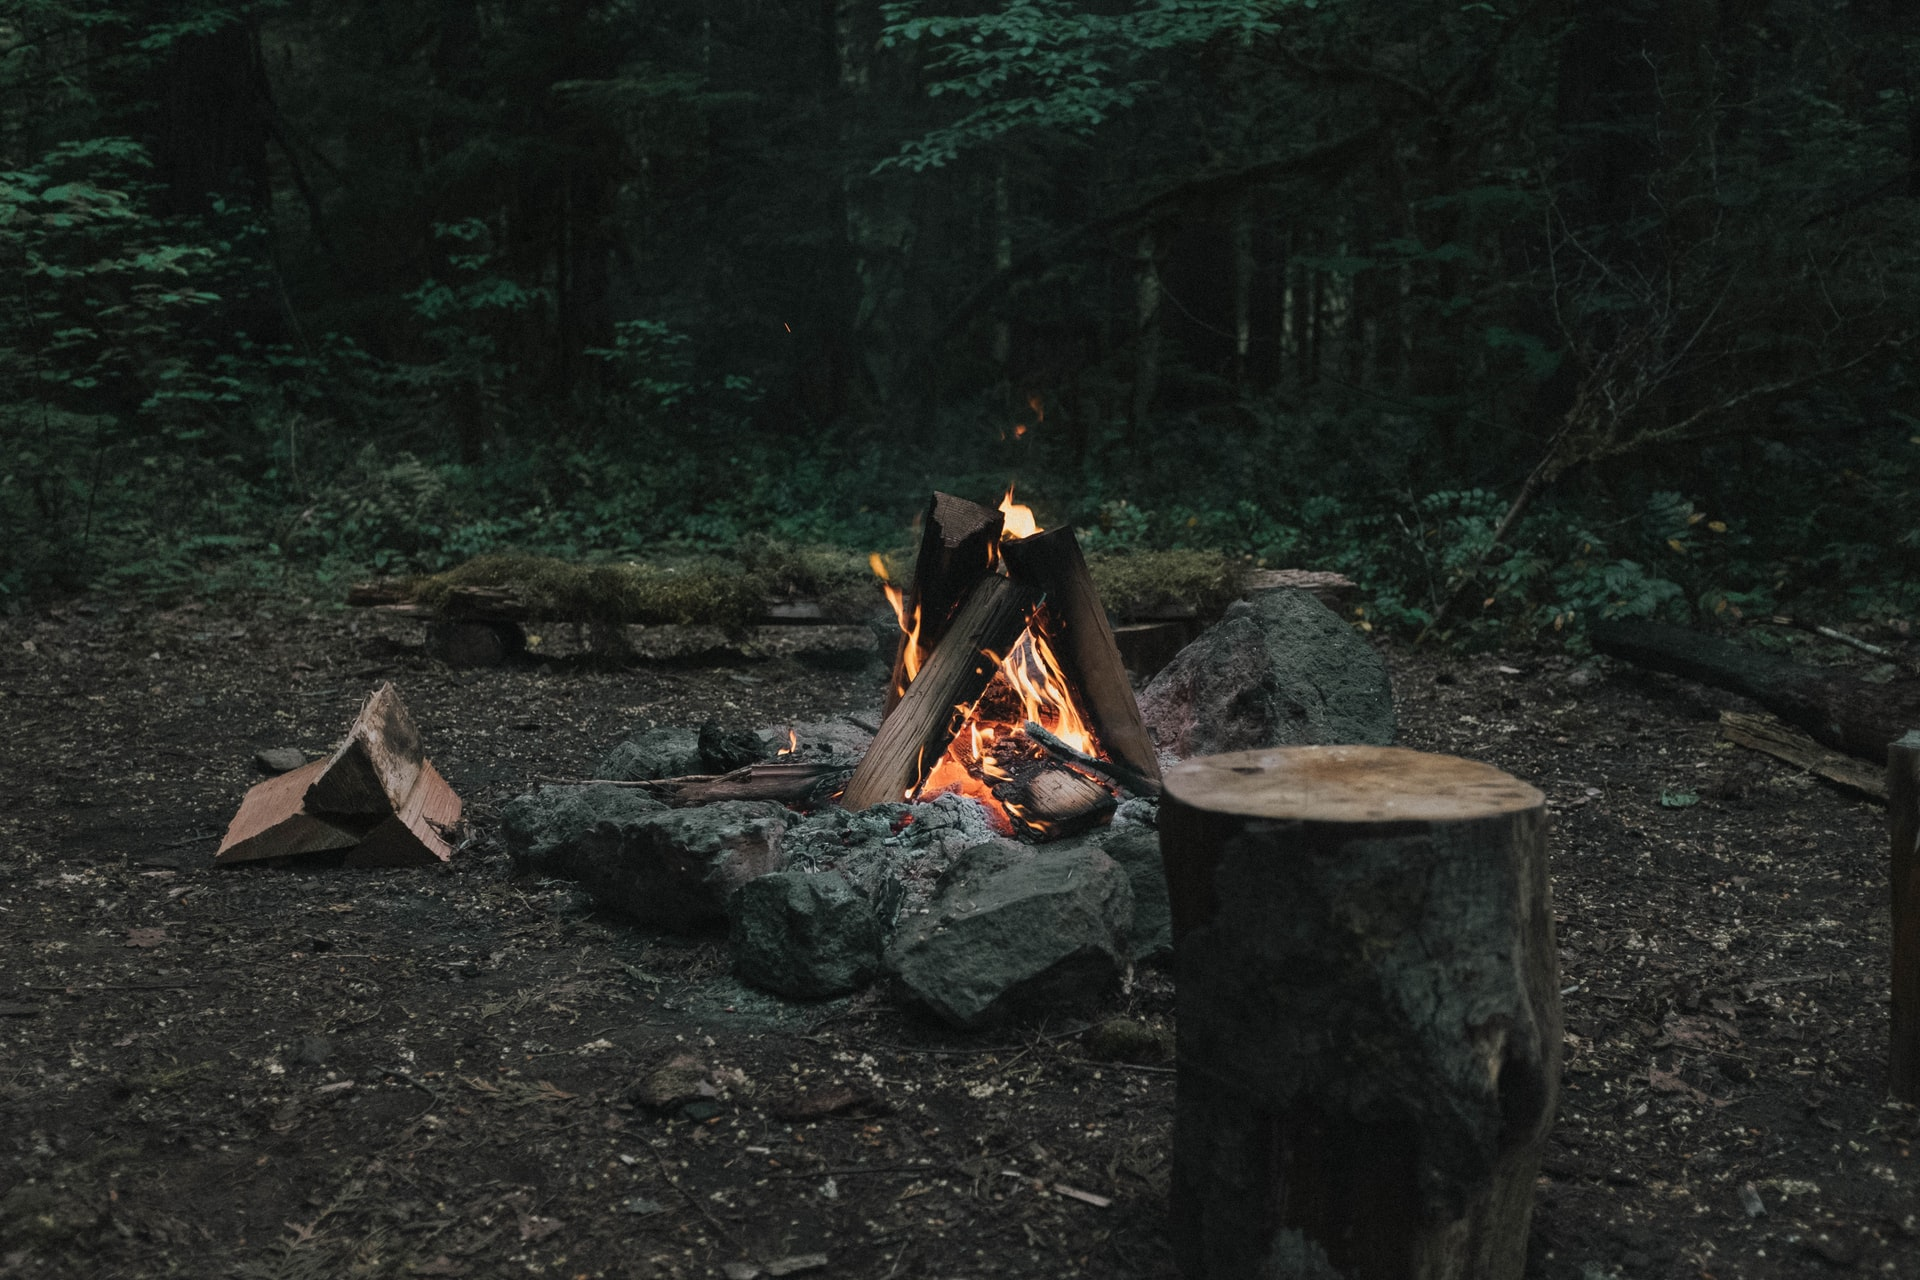 Constructed campfire burning.